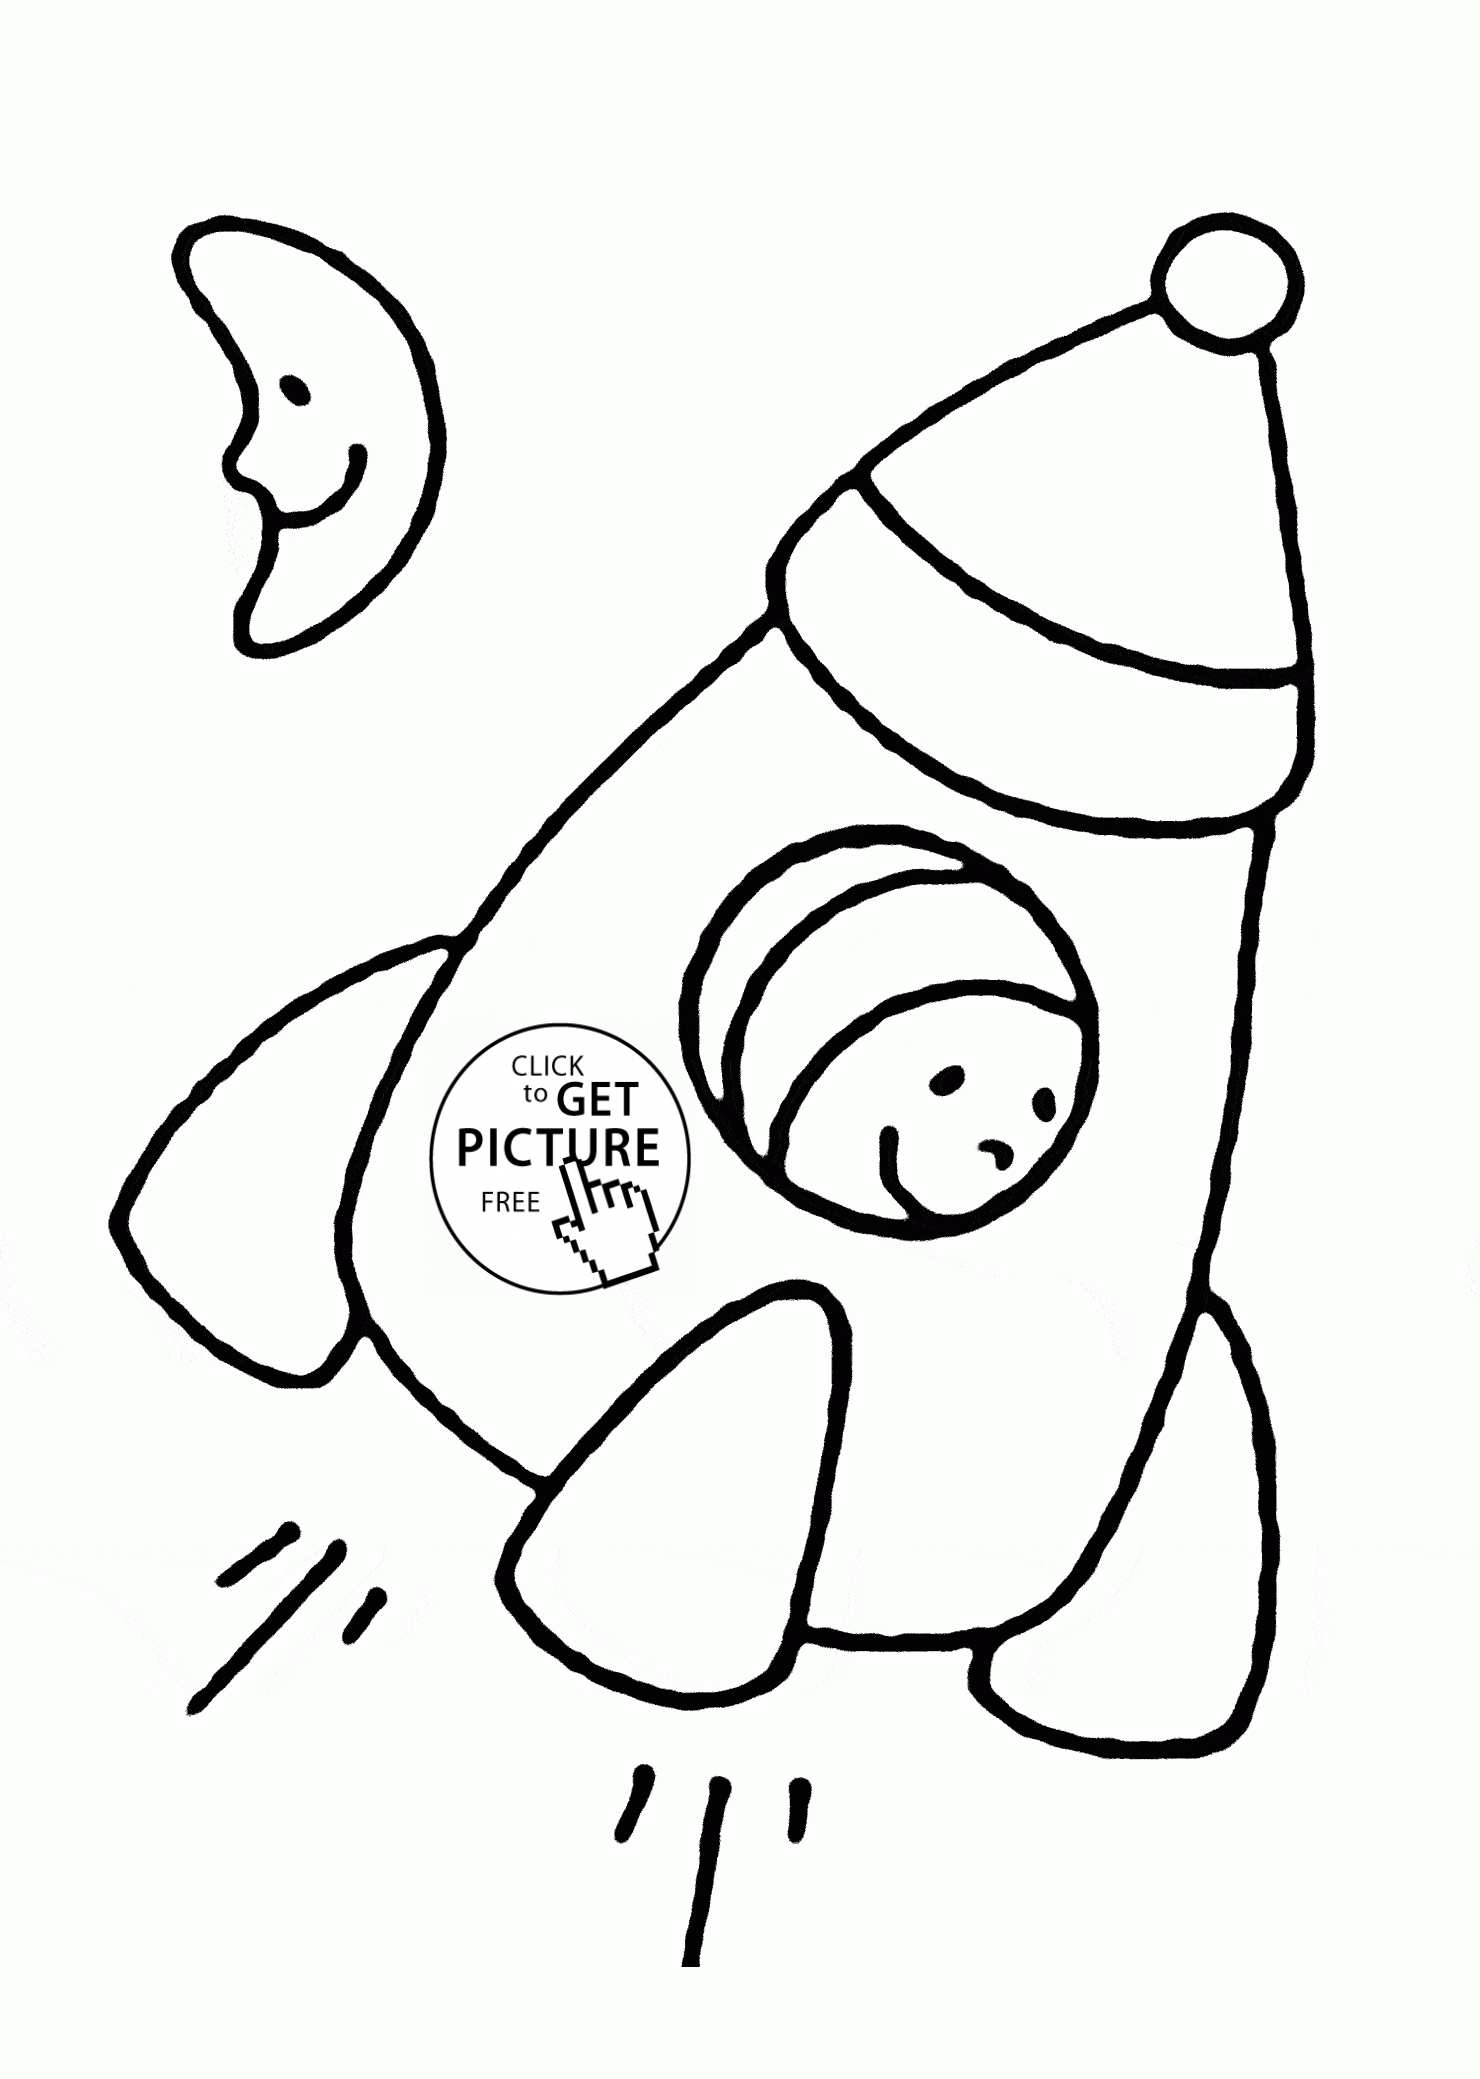 simple coloring pages - simple rocket coloring page for toddlers transportation coloring pages printables free